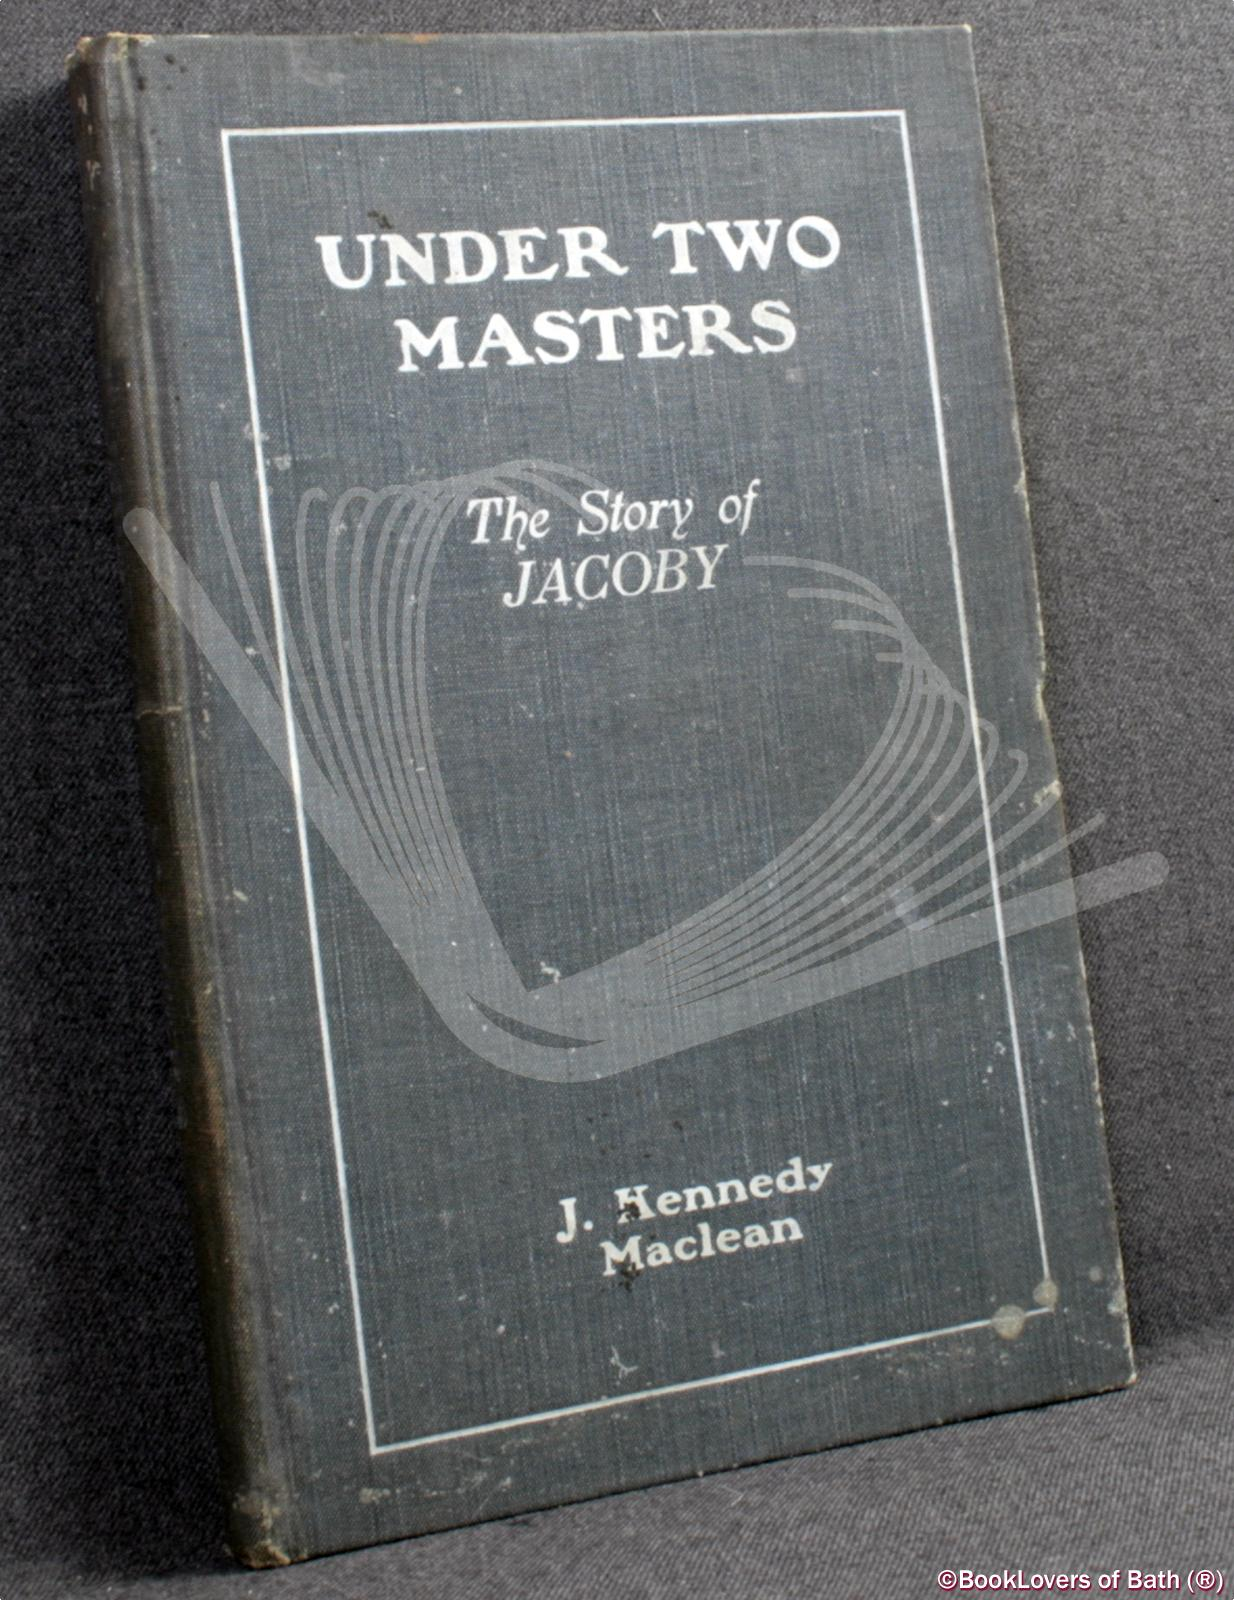 Under Two Masters: The Story of Jacoby, Dr. Torrey's Assistant - J. [John] Kennedy Maclean